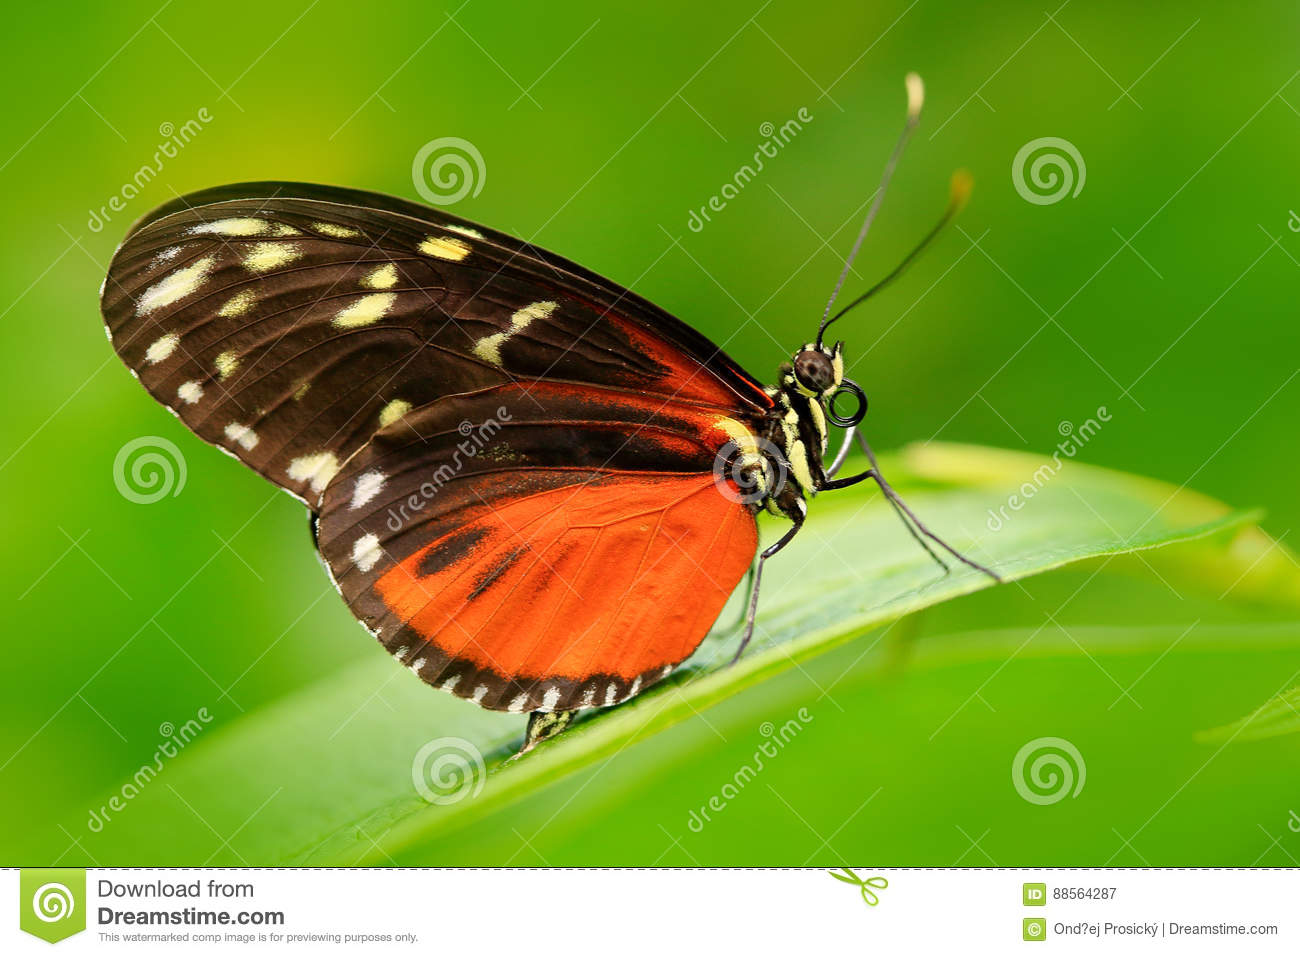 Nice insect from Costa Rica in the green forest. Butterfly sitting on the leave from Panama. Butterfly with ping flower. Wildlife